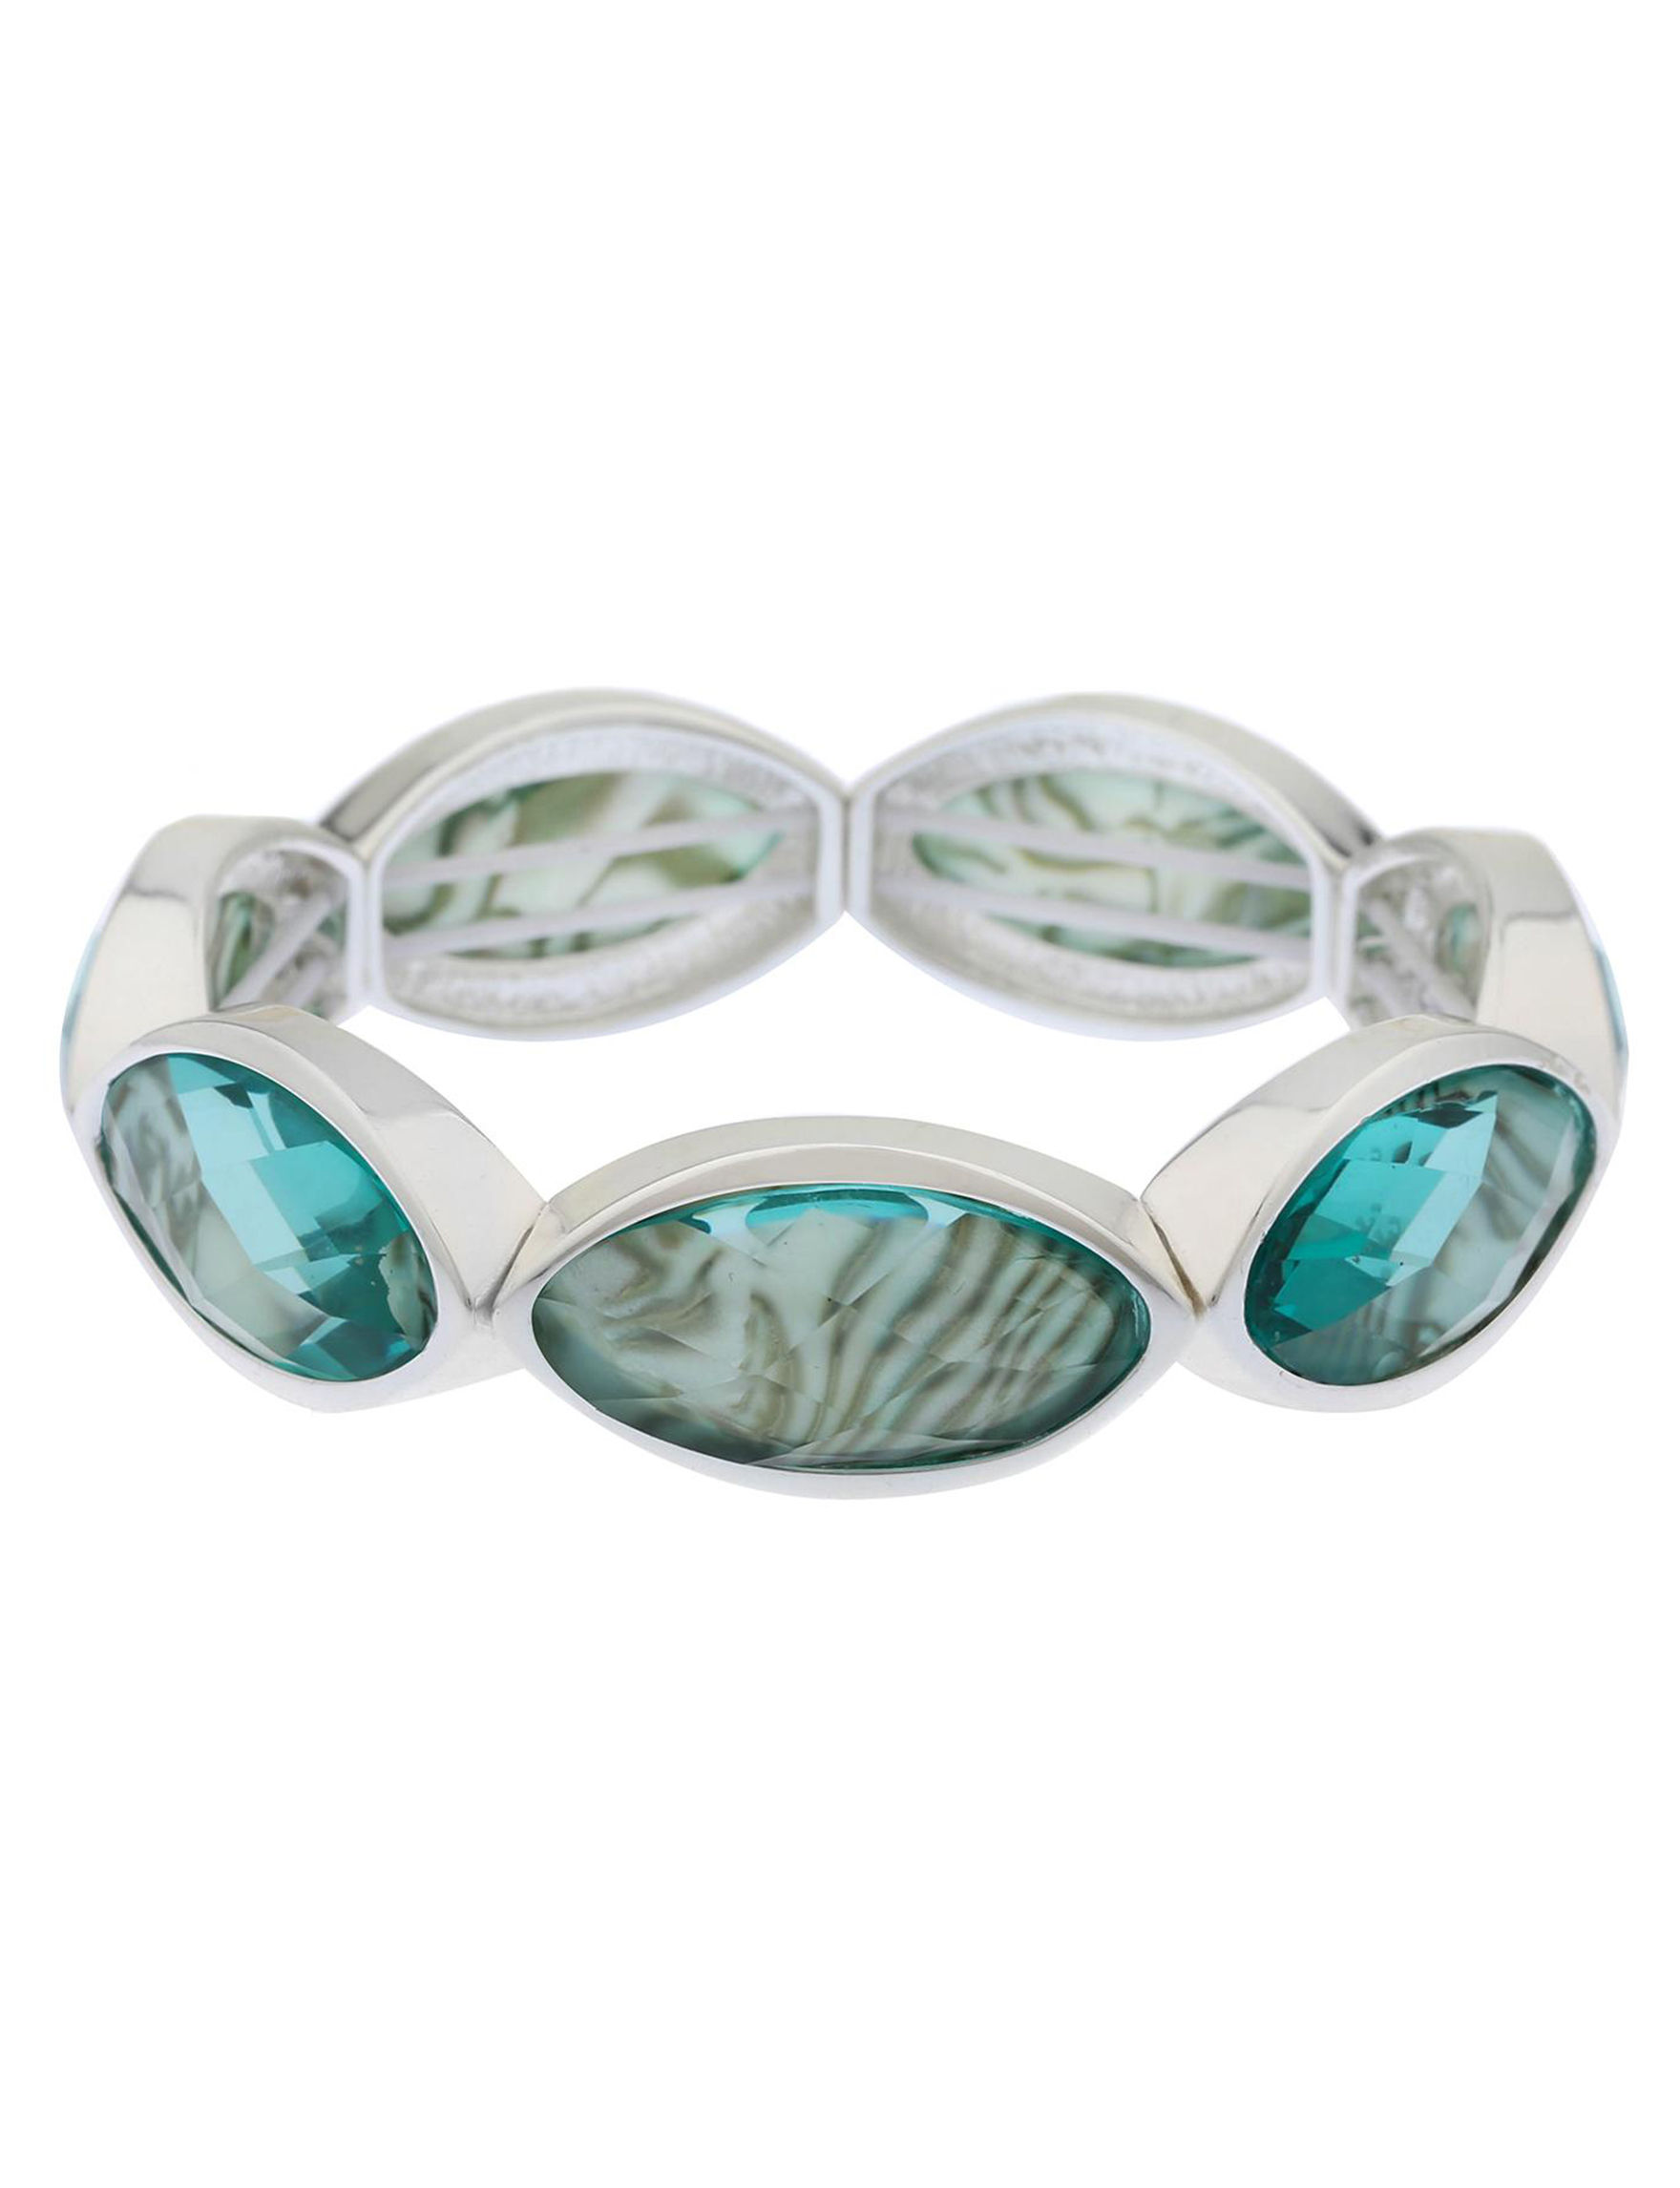 Gloria Vanderbilt Blue / Silver Bracelets Fashion Jewelry